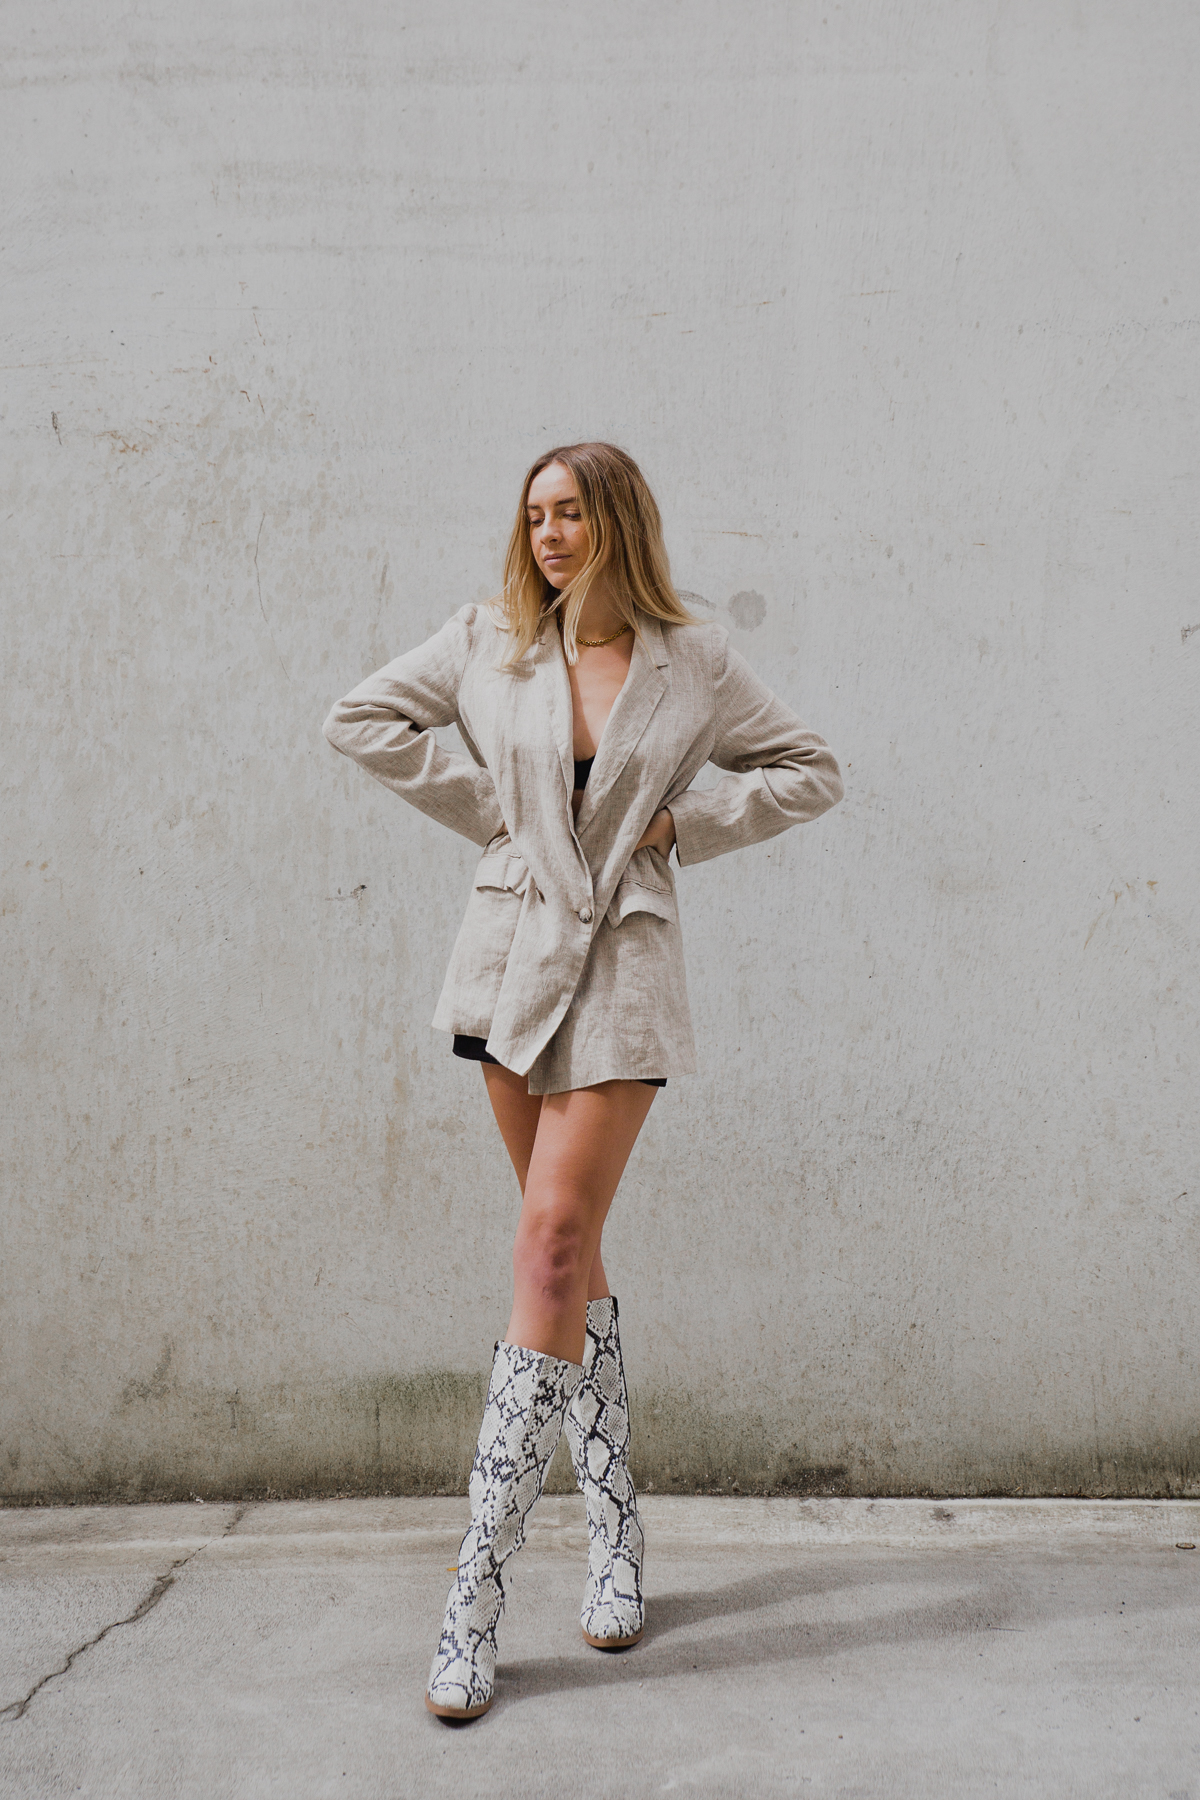 Reformation Linen Blazer & Snakeskin Knee High Boots | Stoleninspiration.com NZ Top Fashion Blogger_-15